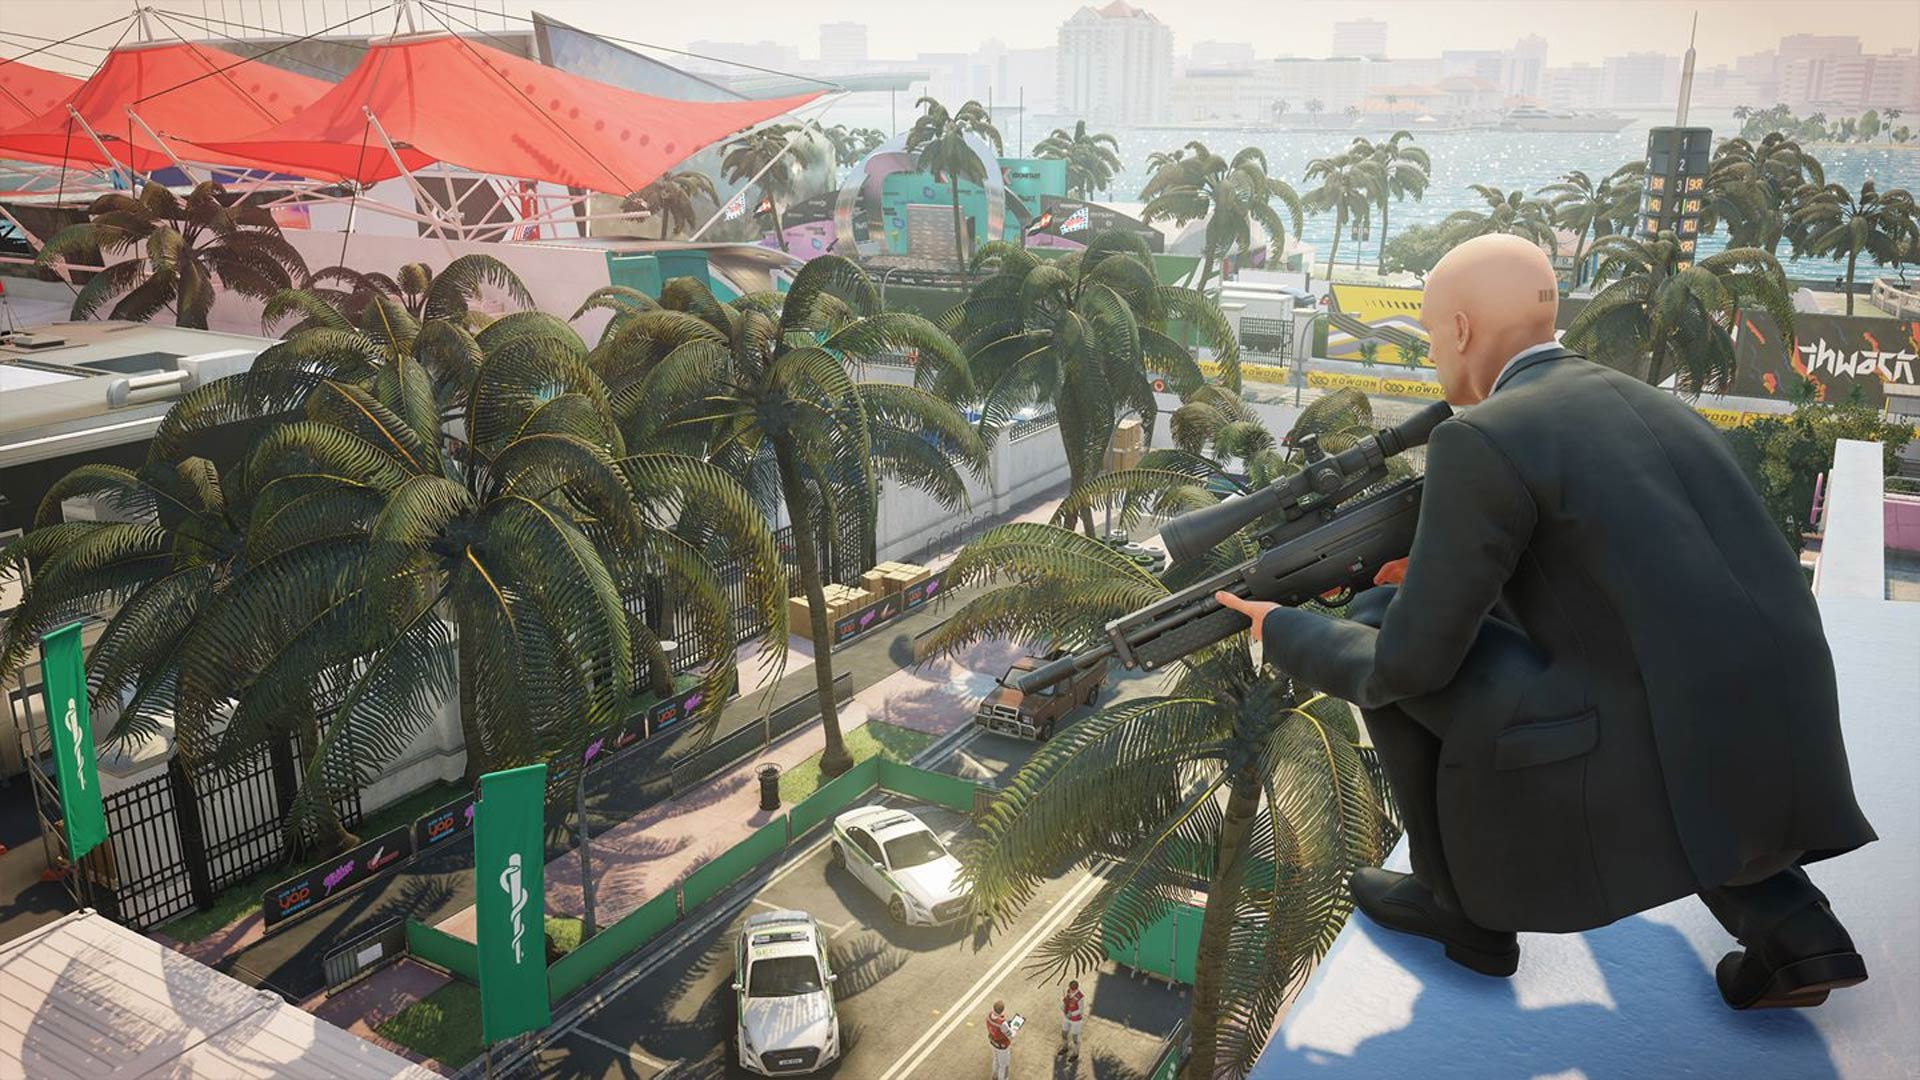 Hitman 2 Xbox One X Screenshot